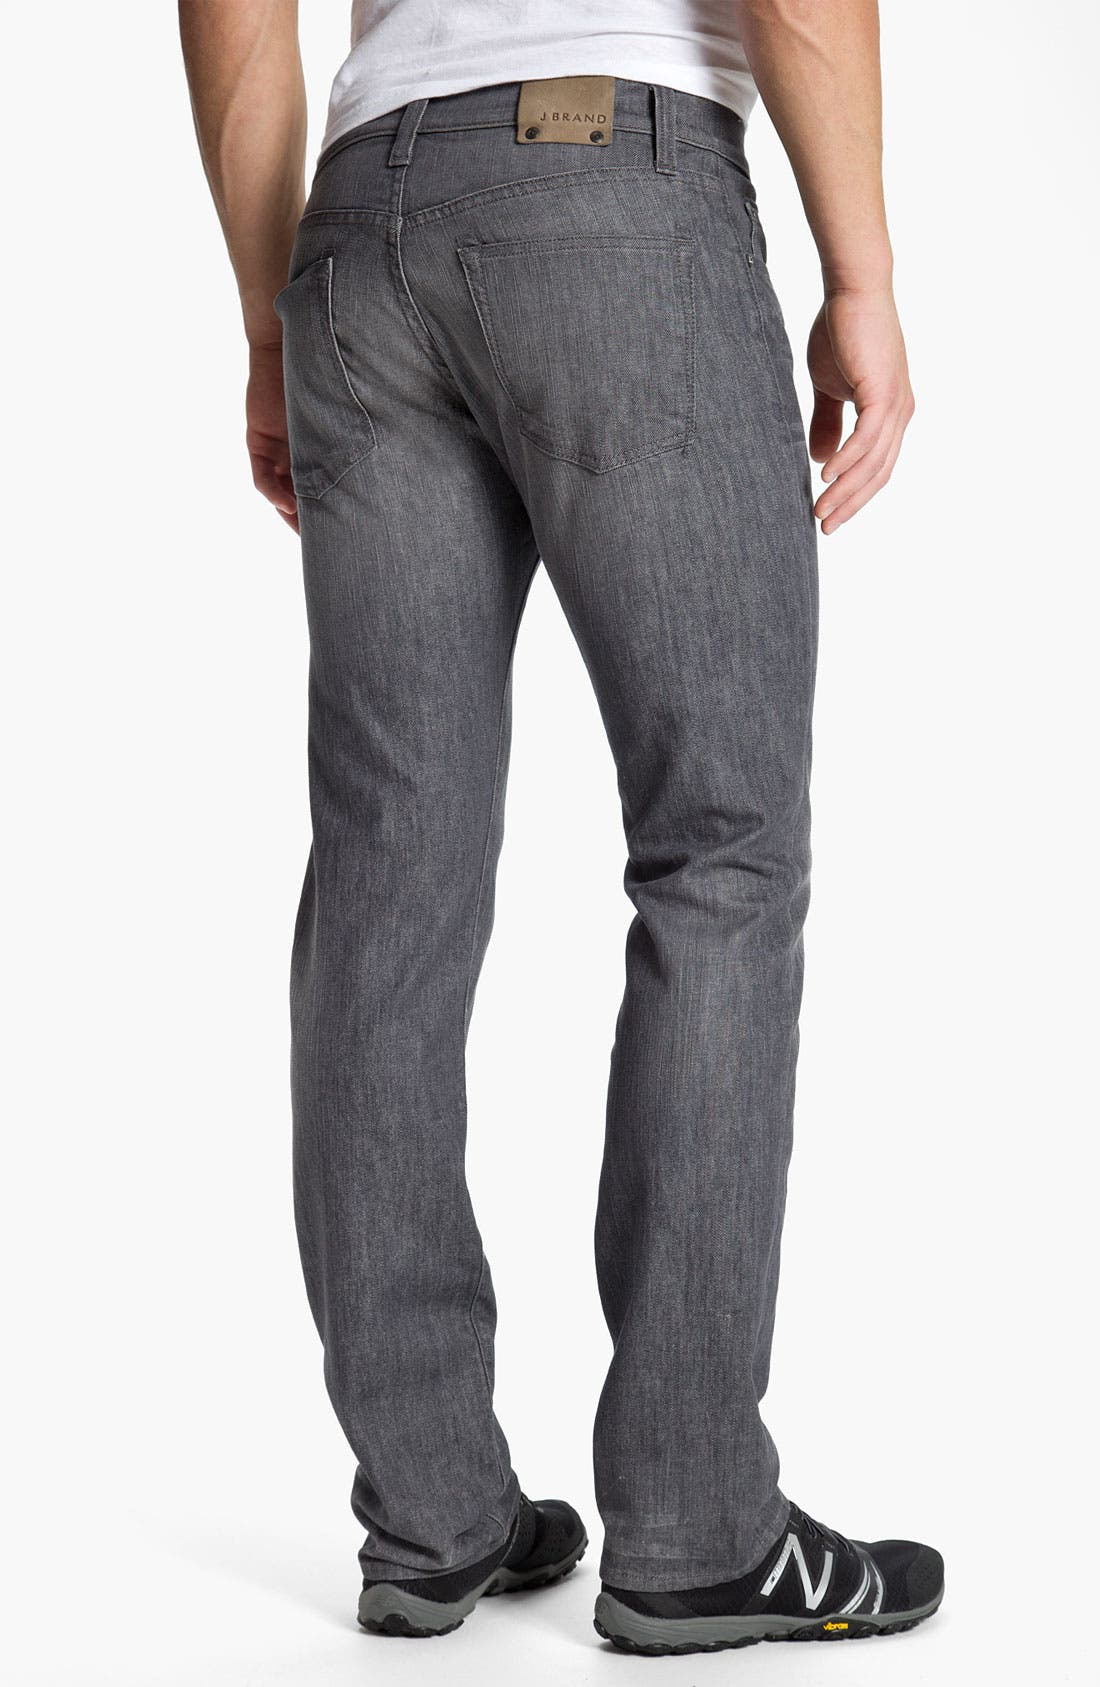 Main Image - J Brand 'Kane' Slim Fit Jeans (Ricochet) (Save Now through 12/9)